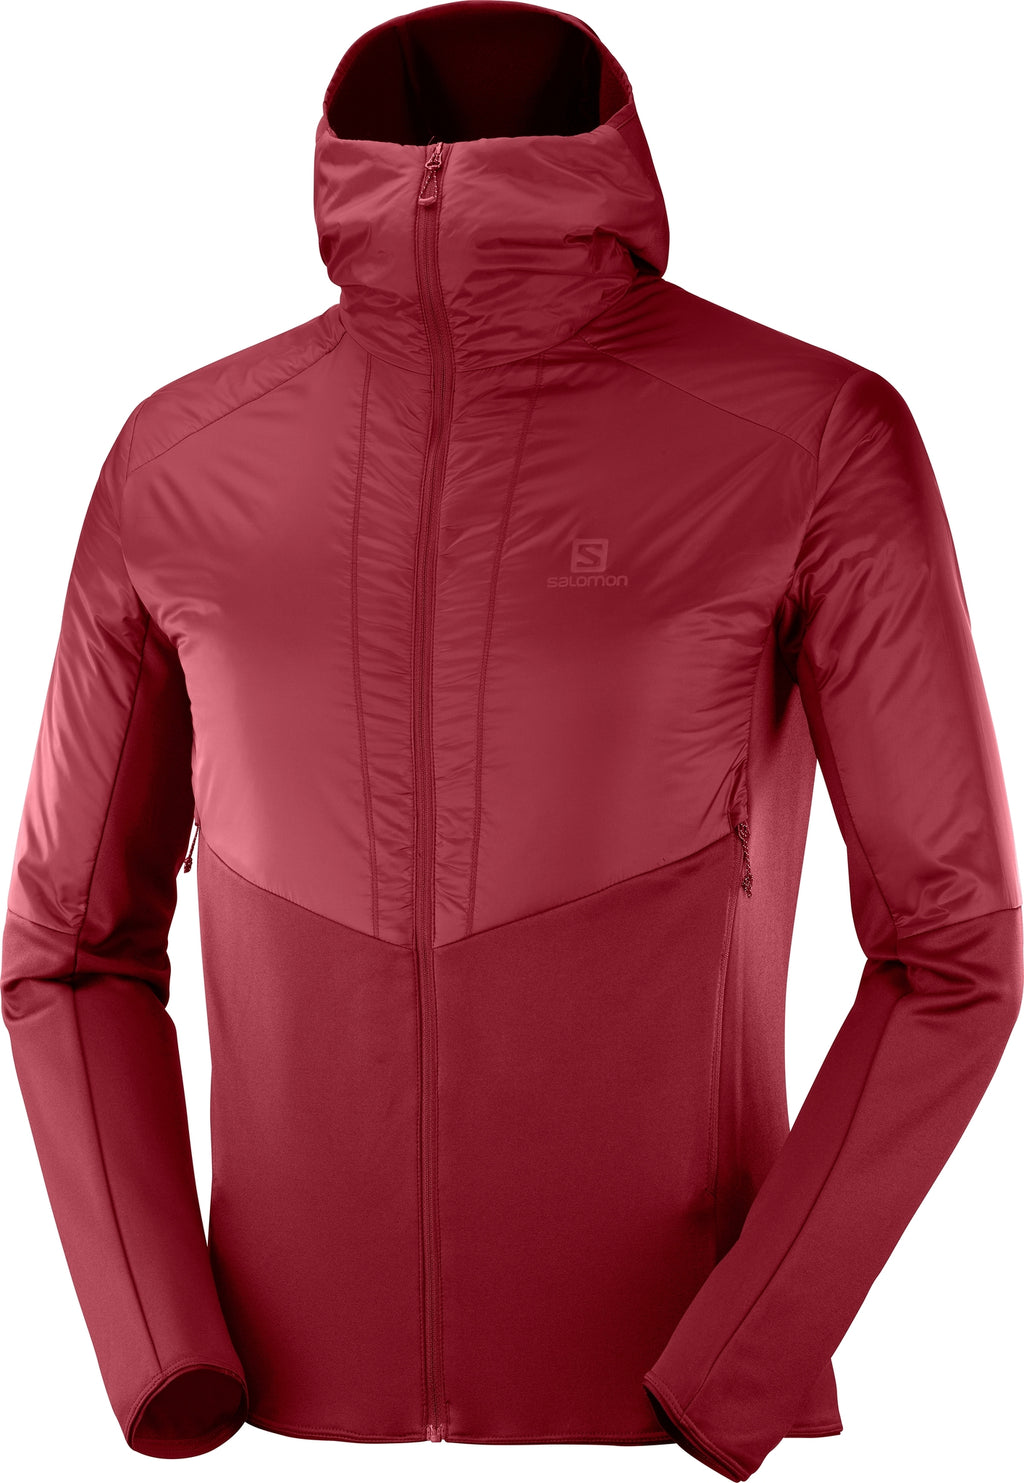 Salomon Outline Warm Jacket Men's